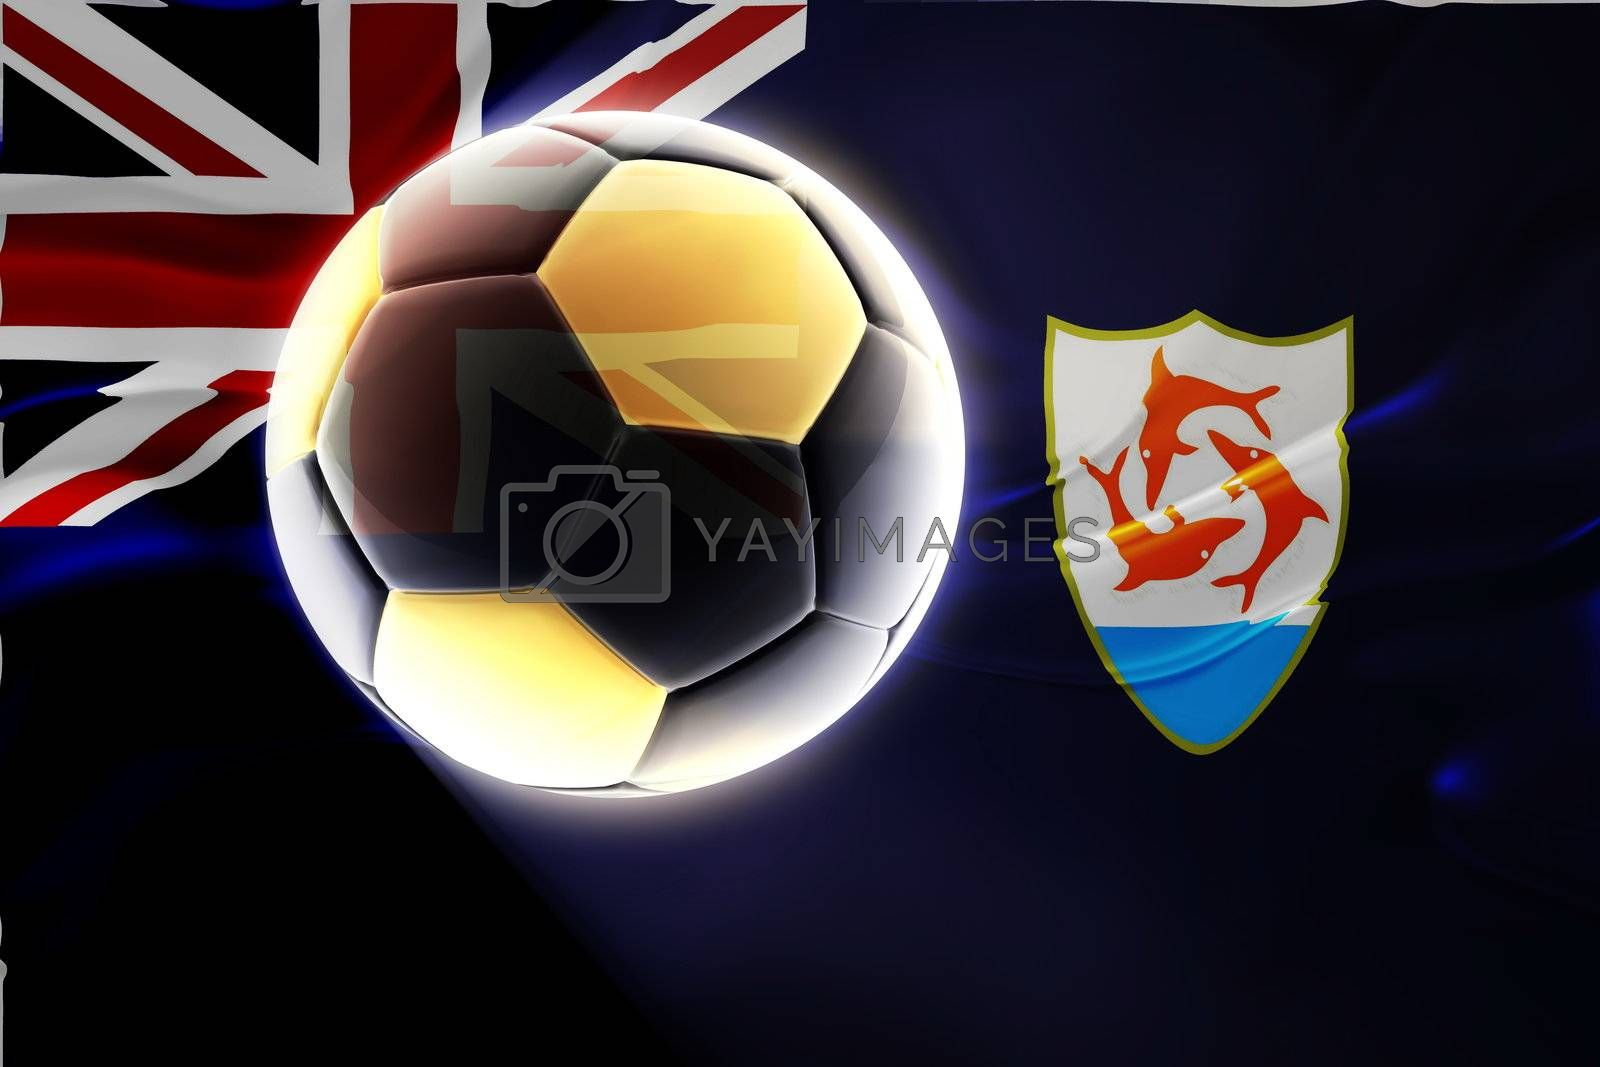 Royalty free image of Flag of Anguilla wavy soccer by kgtoh